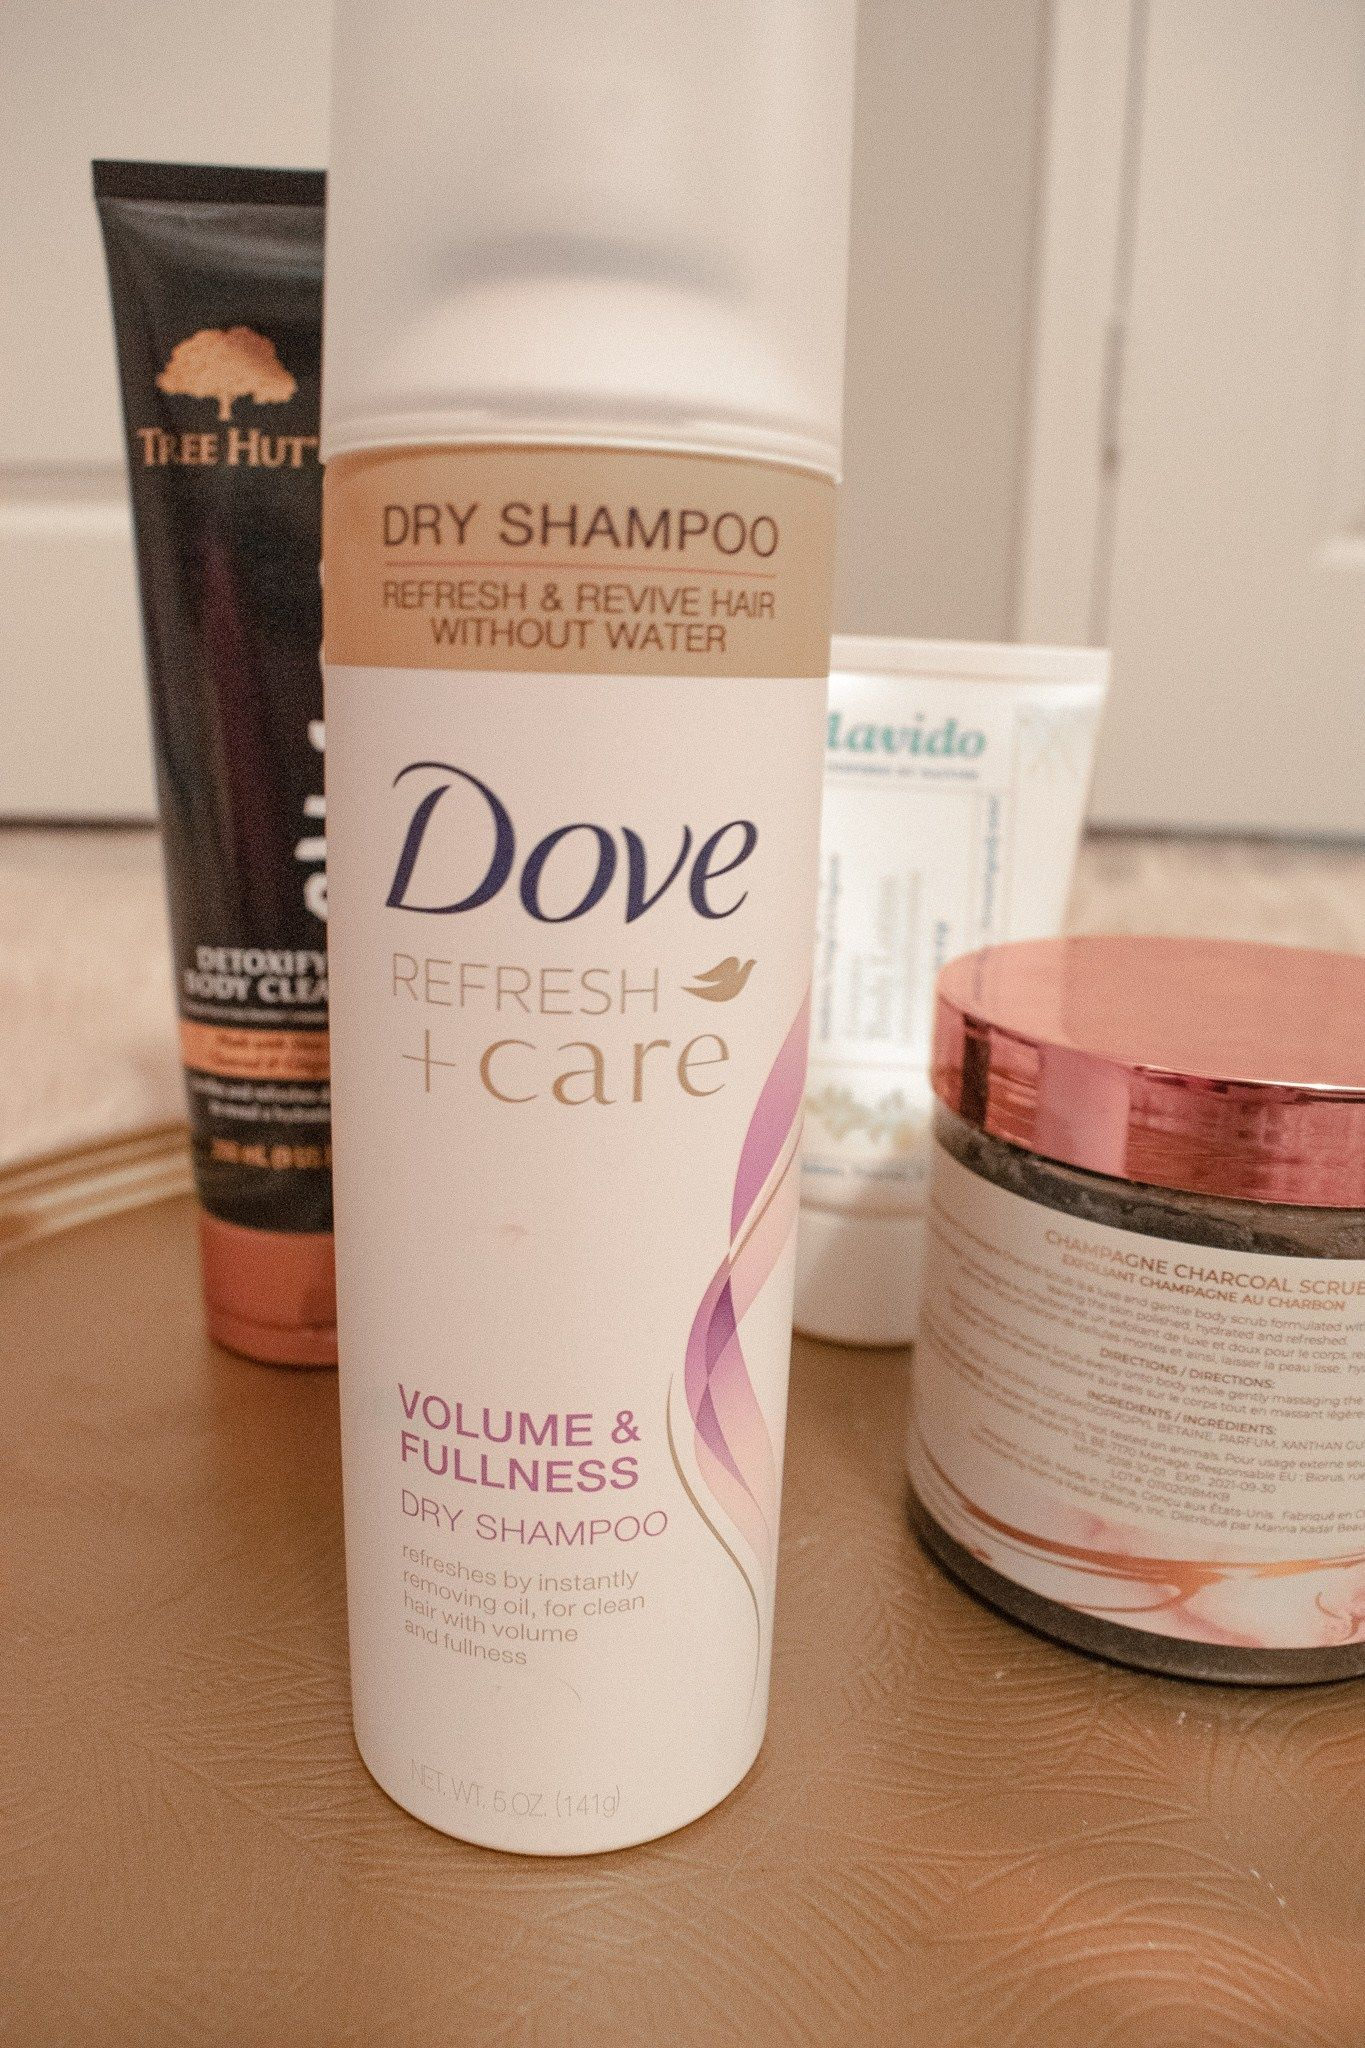 Beauty Products Roundup March Moments W Mags Dove Dry Shampoo Dry Shampoo Body Cleanser